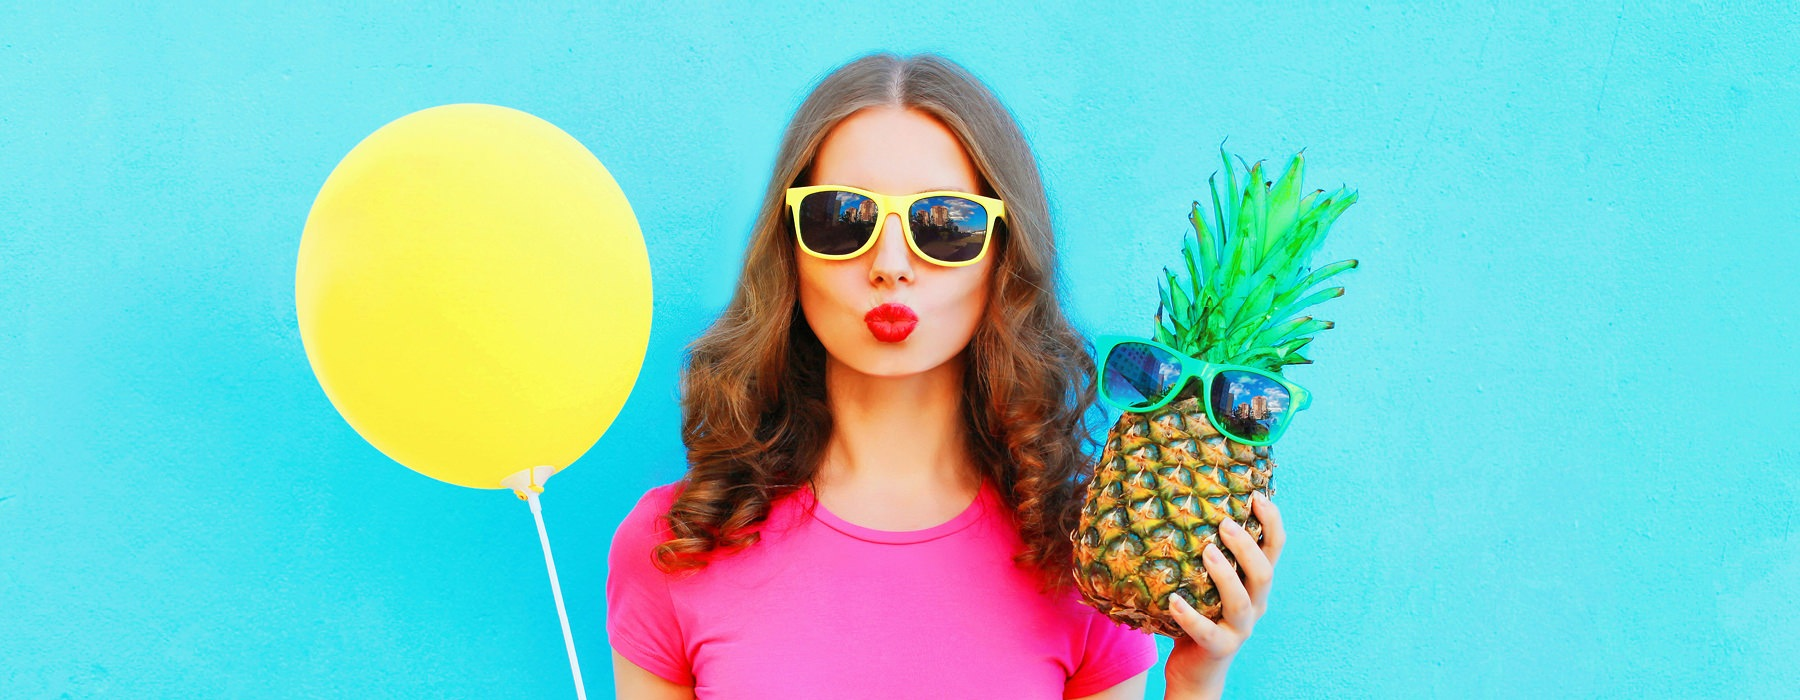 Woman holding a pineapple and yellow balloon